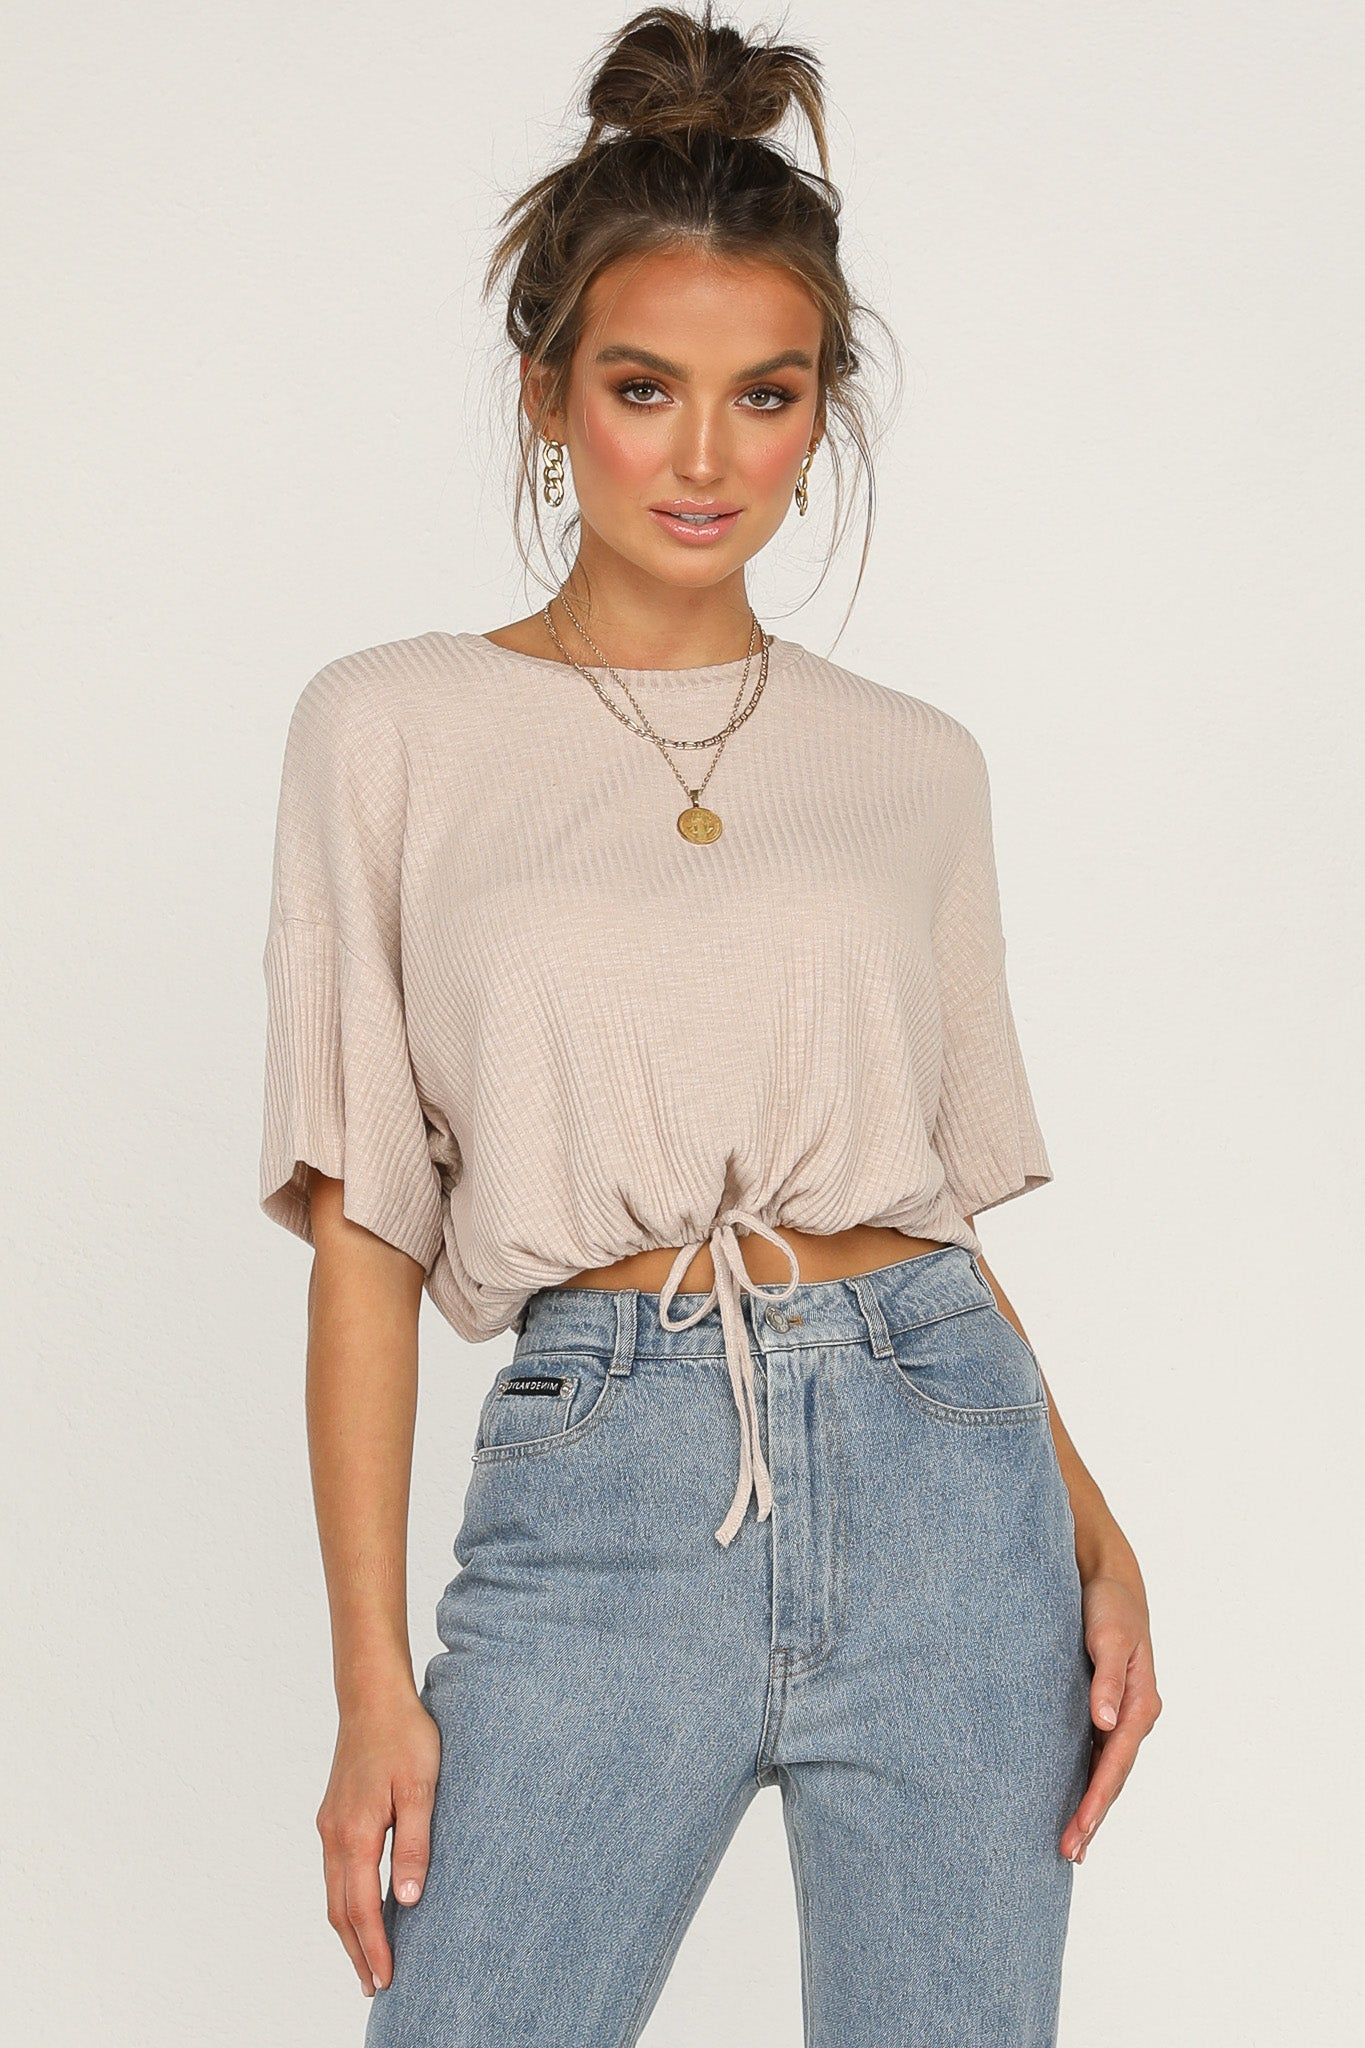 Ellerie Knit Top